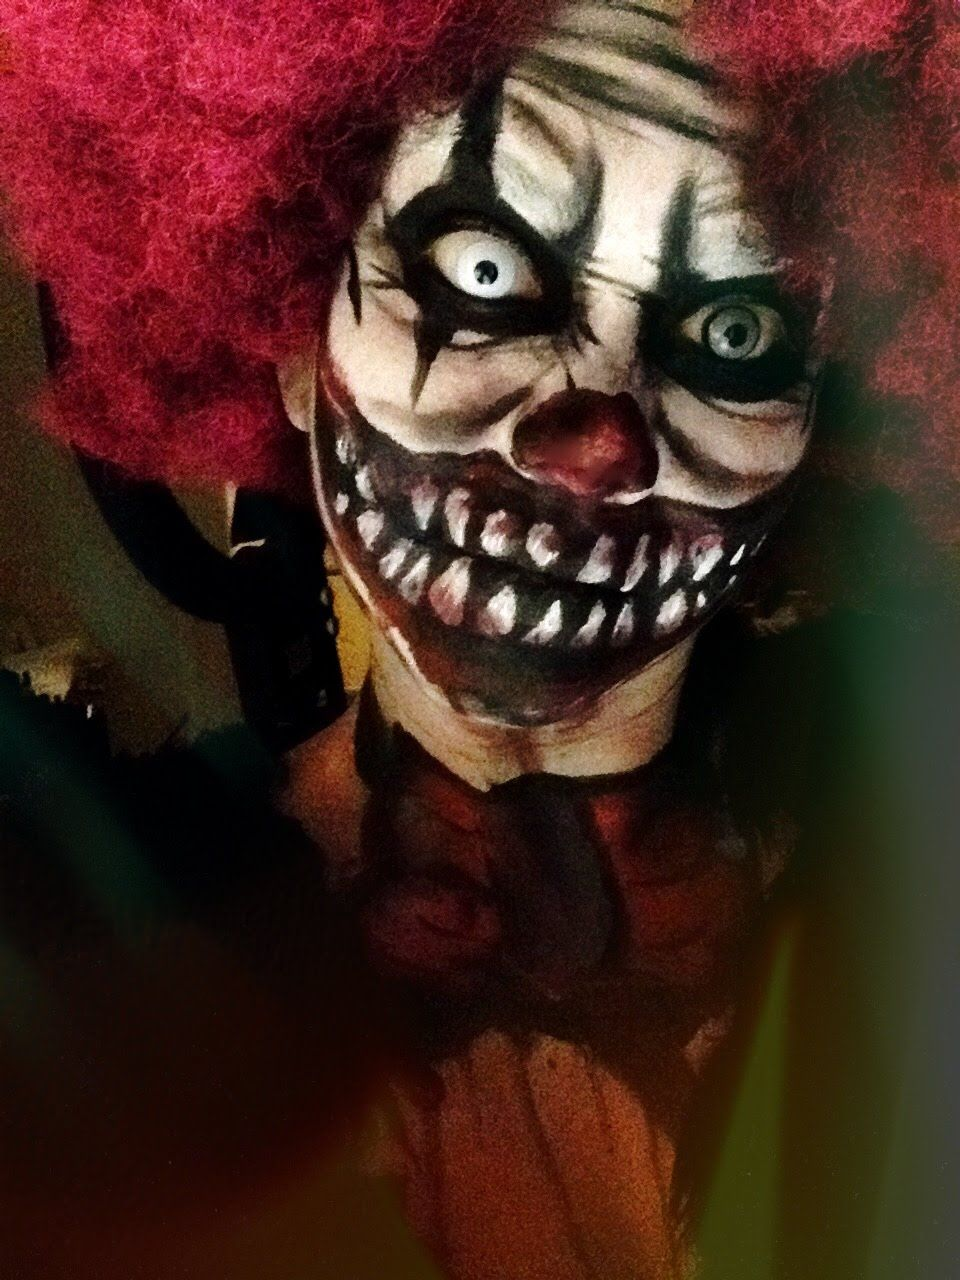 Halloween Clown.Scary Clown Halloween Makeup Tutorial Youtube Halloween